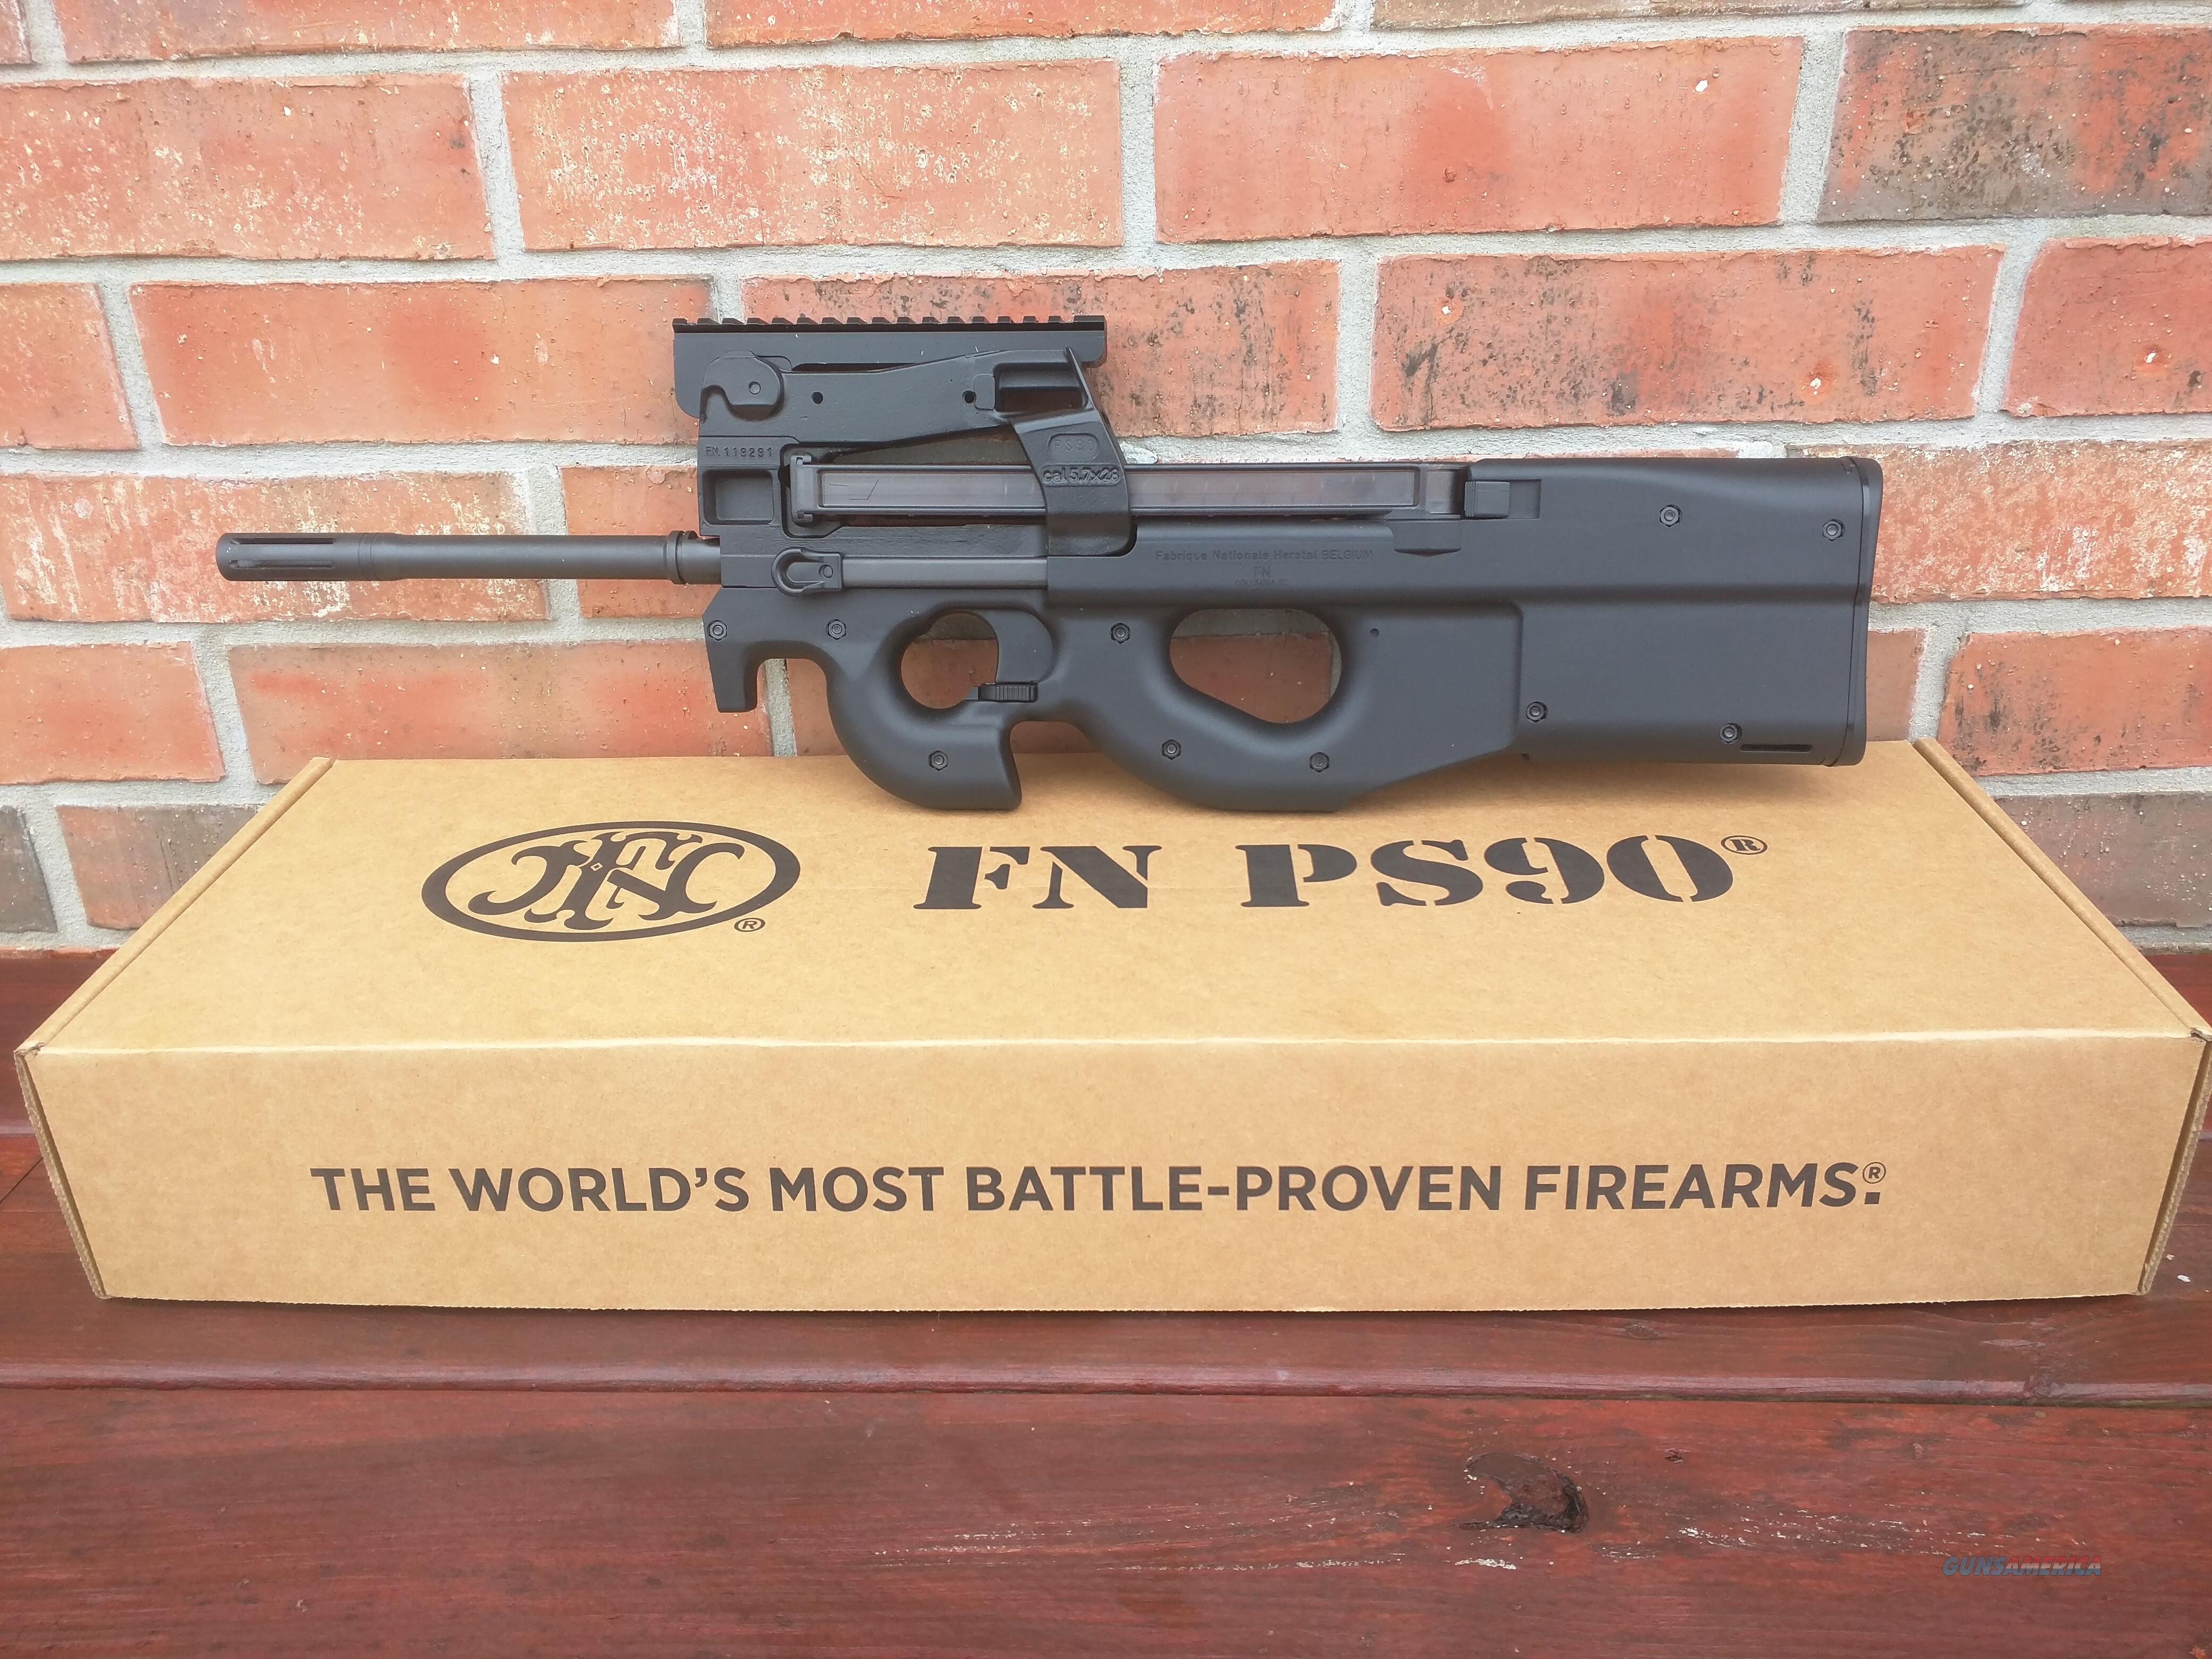 "FN FNH PS90 PS 90 5.7x28 BullPup 16"" Hard To Get NIB Lightweight Ambi Controls Great Trigger Rail for Optics 30Rd Mag Free Layaway   Guns > Rifles > FNH - Fabrique Nationale (FN) Rifles > Semi-auto > PS90"